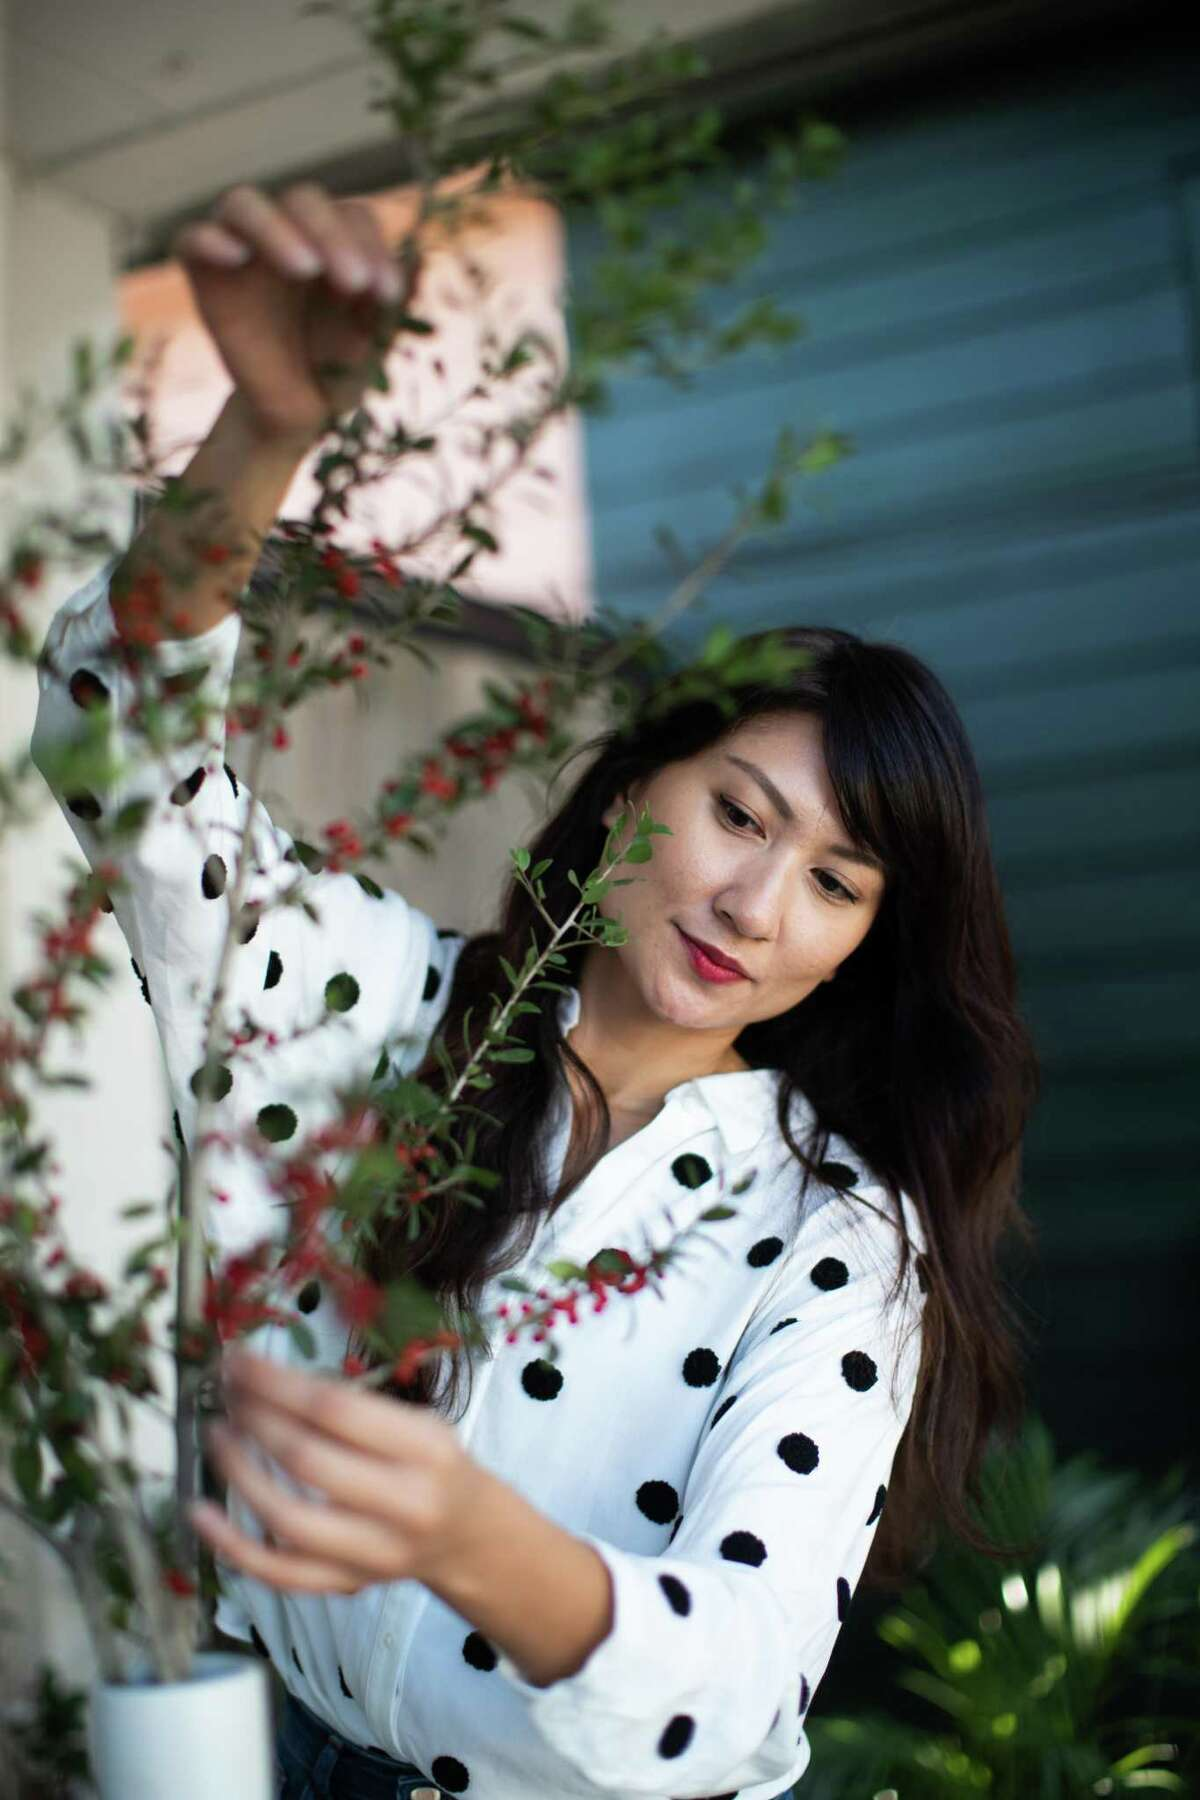 Karla Modesto, floral artist and owner of Babe City Blooms, Thursday, Nov. 12, 2020, in Houston. After getting laid off from her day job during the COVID-19 pandemic, Modesto chose to take it as an opportunity to devote herself fully to her passion: floral arrangements. She threw herself into the business, Babe City Blooms, and moved her floral wares into her friend's music store, forging a new plant and music shop on Westheimer Road, called